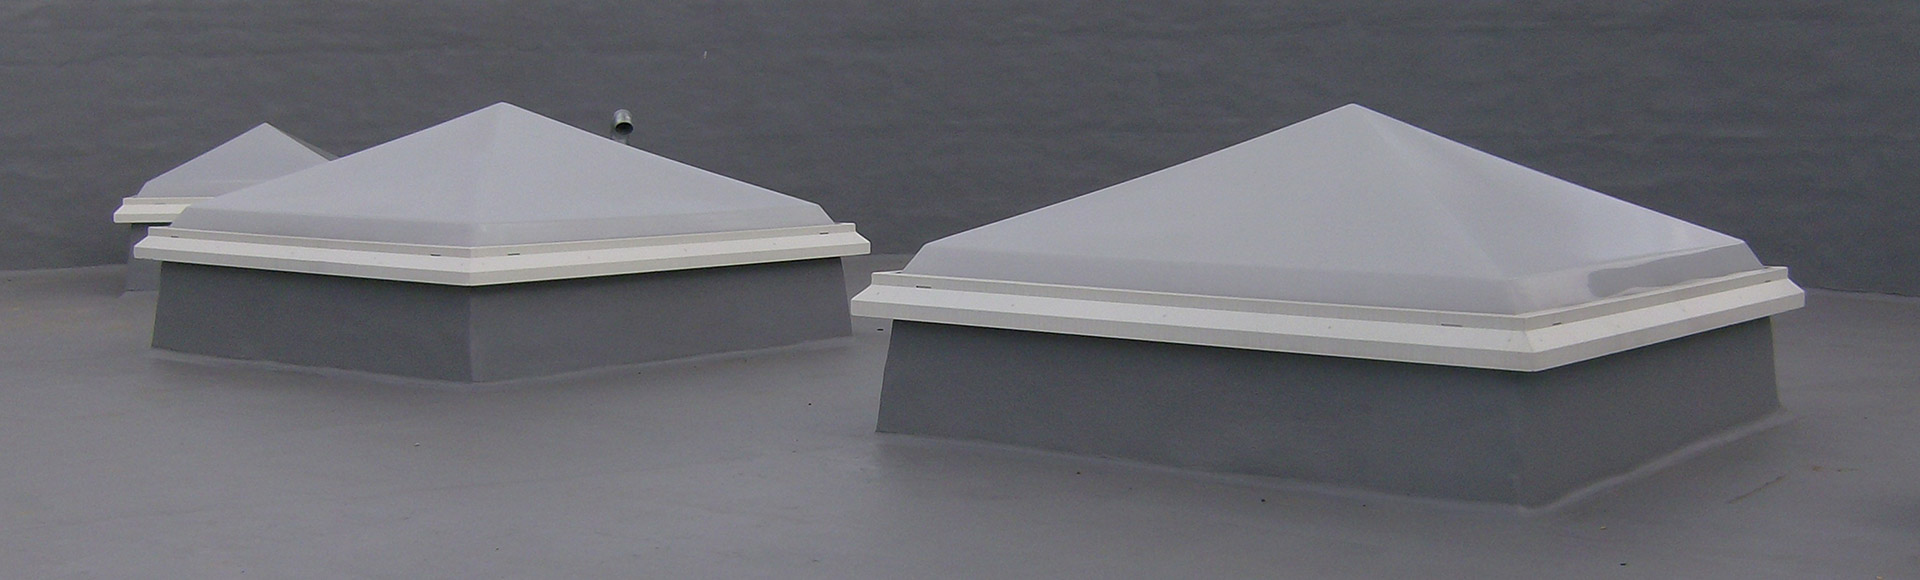 Rooflight & Access Systems